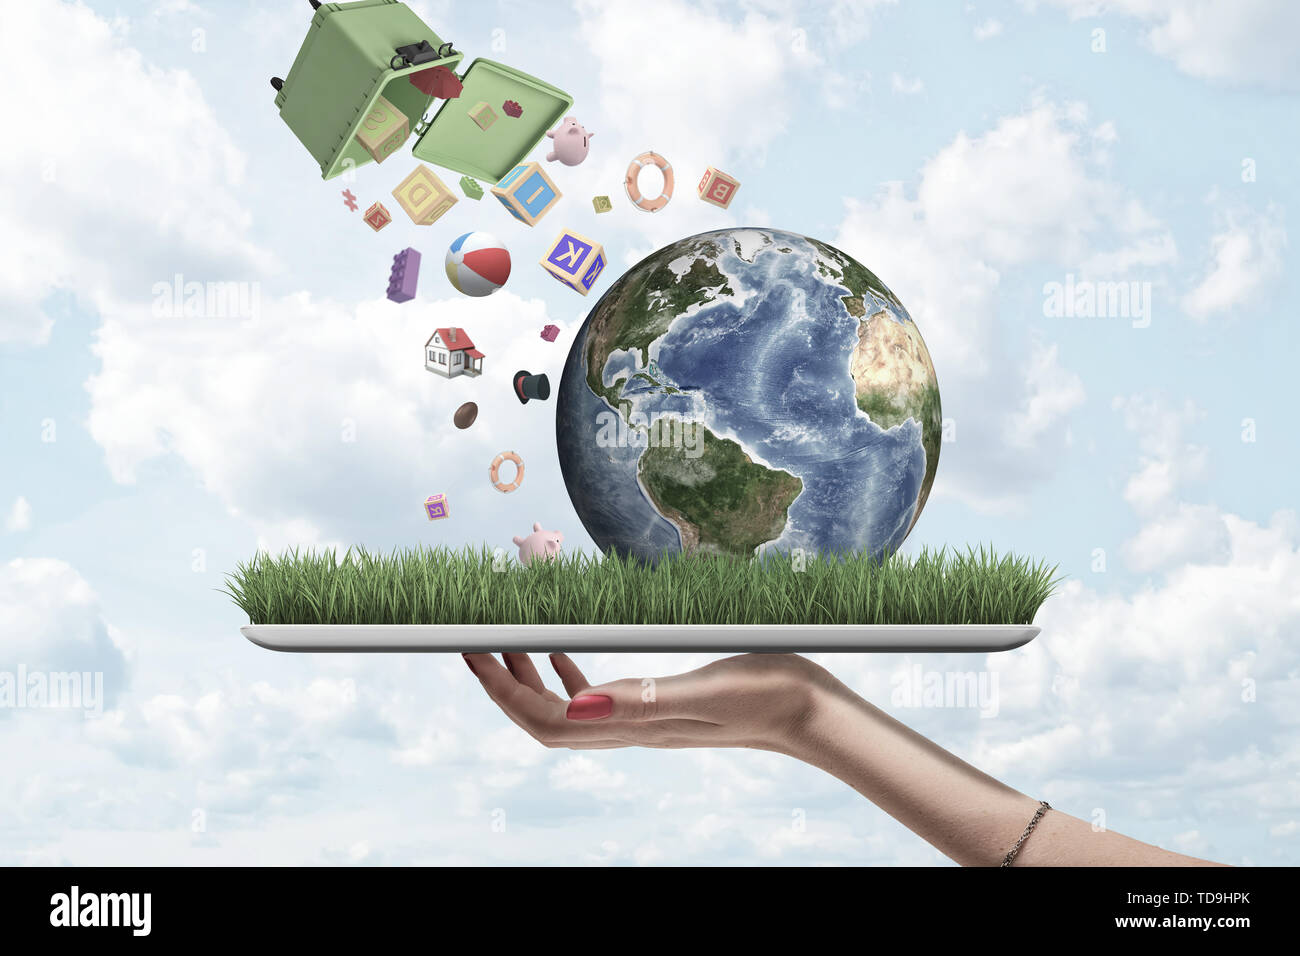 Hand holding digital tablet with grass growing on screen and little Earth on it, and dumpster toppled over in air from which a lot of objects are Stock Photo